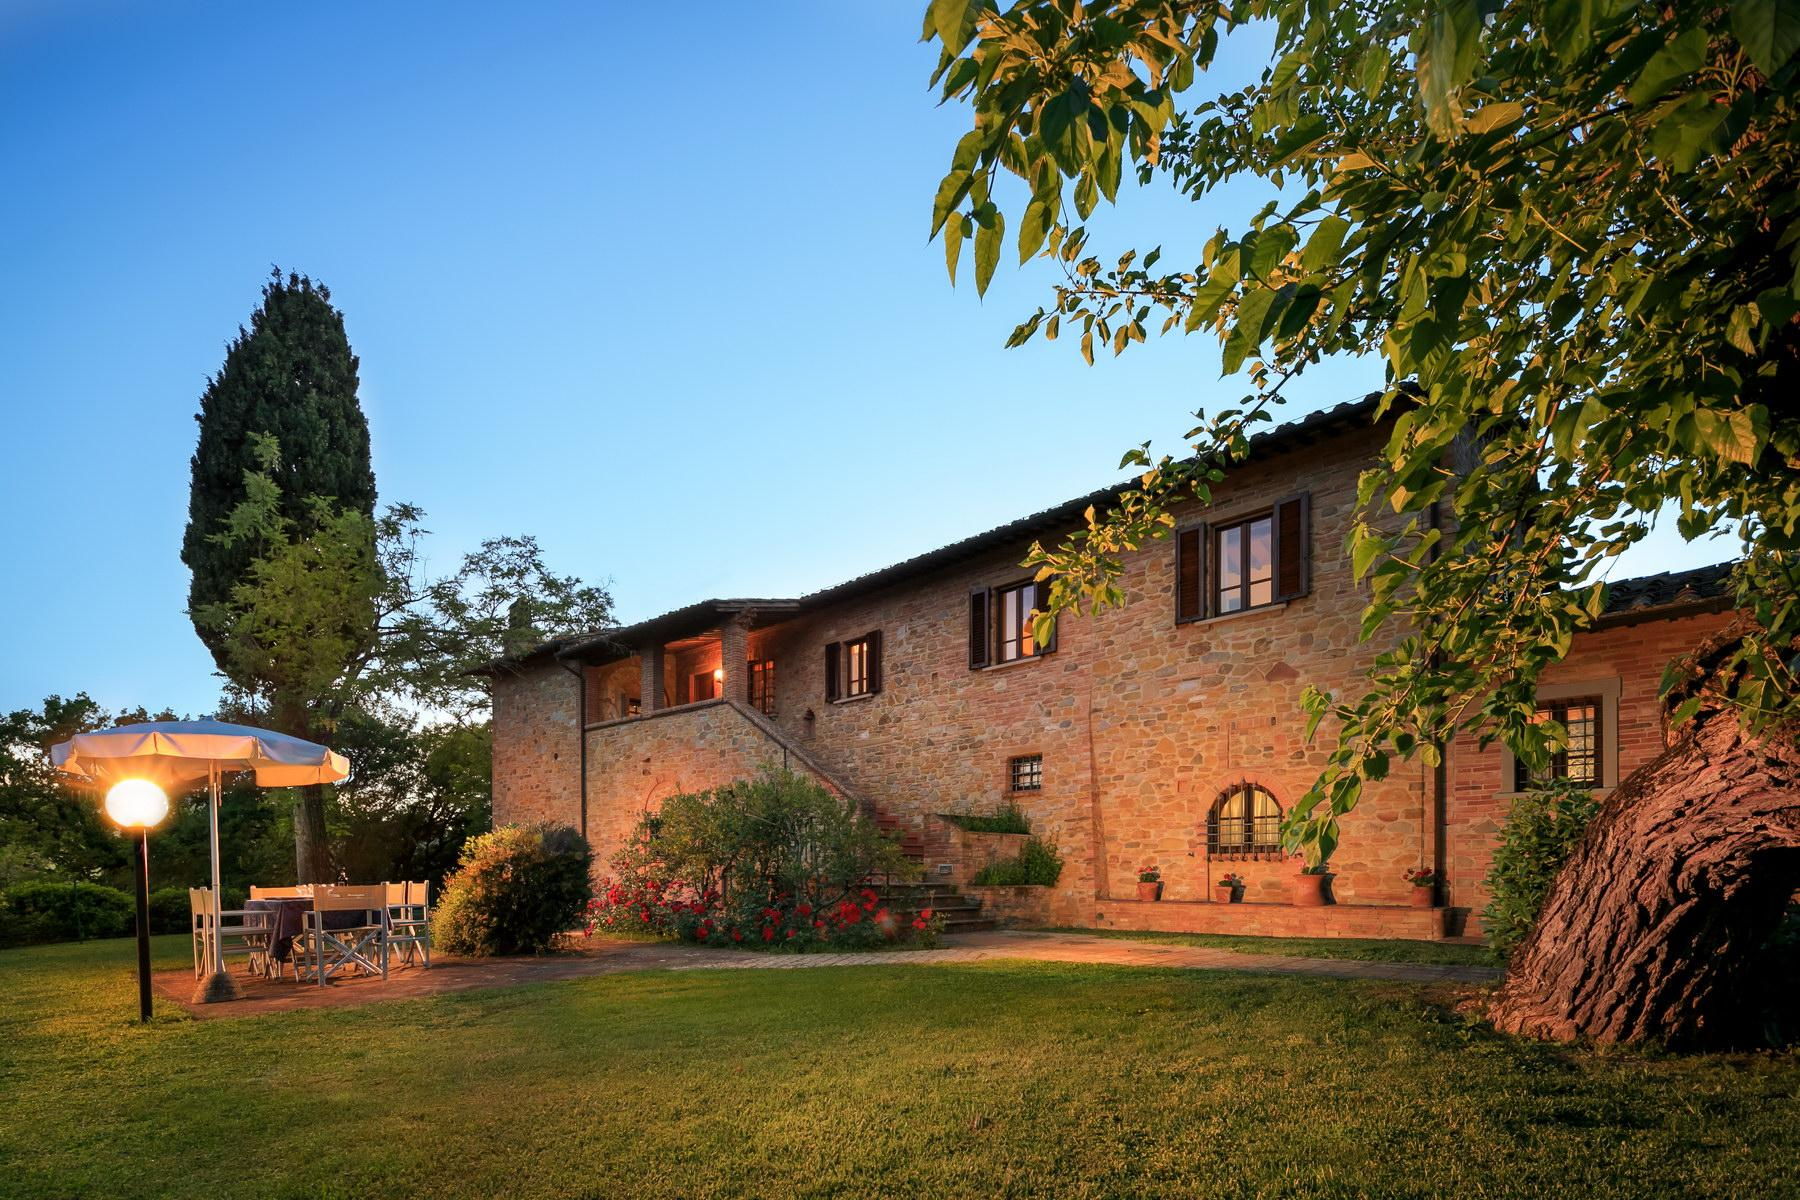 Wonderful countryhouse in the tuscan countryside - 2